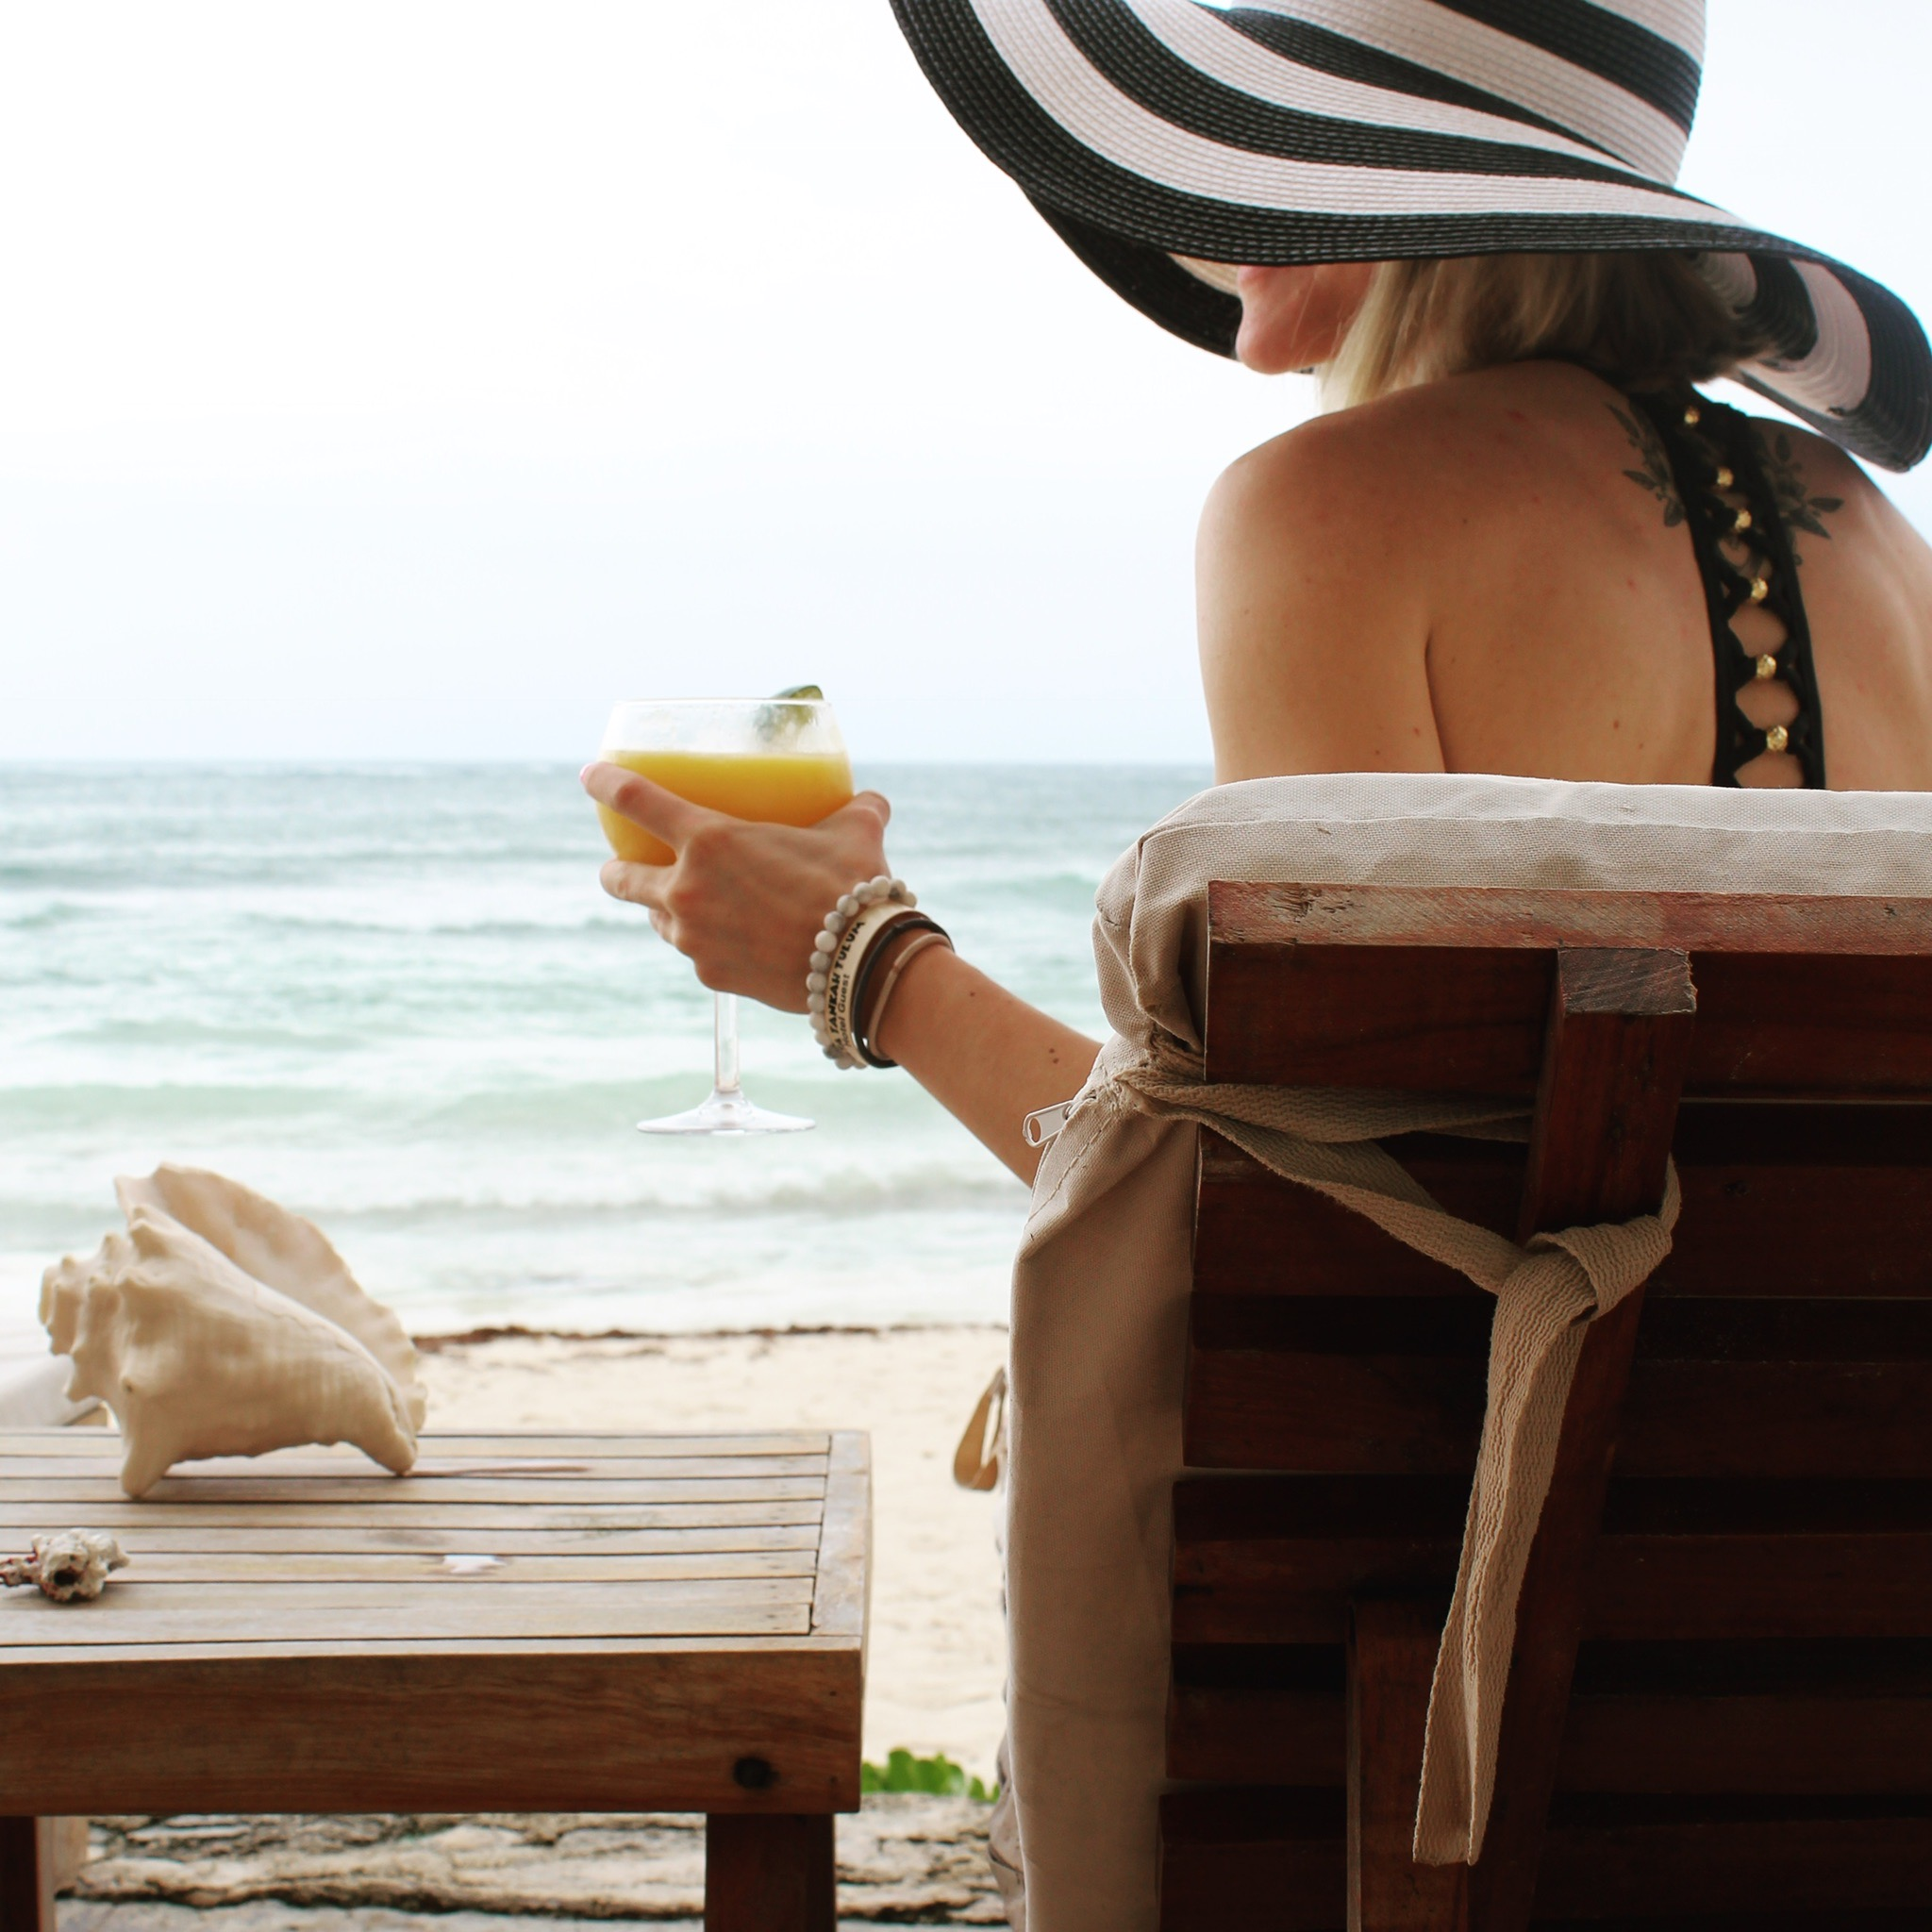 Sipping Mango Margaritas on the Beach in Tulum, Mexico   Thoughtfully Thrifted